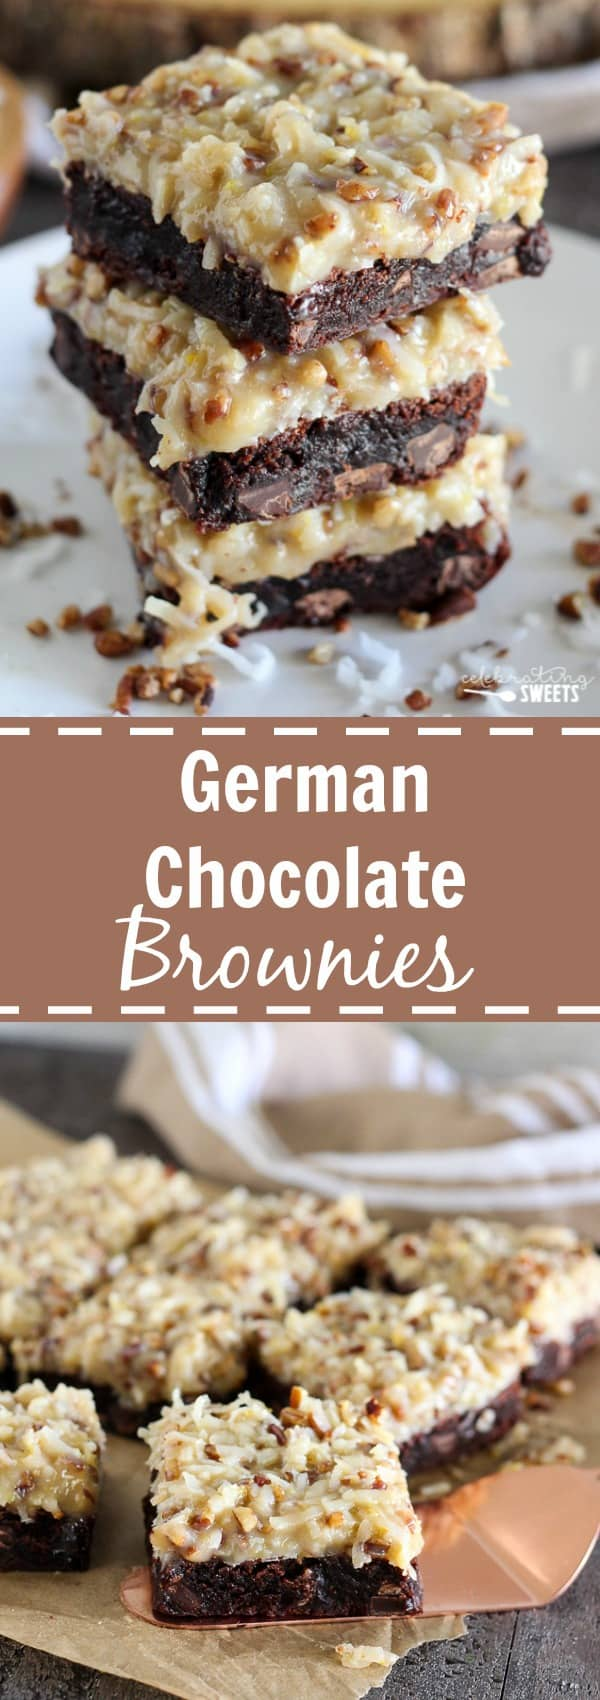 Caramel Pecan German Chocolate Brownies